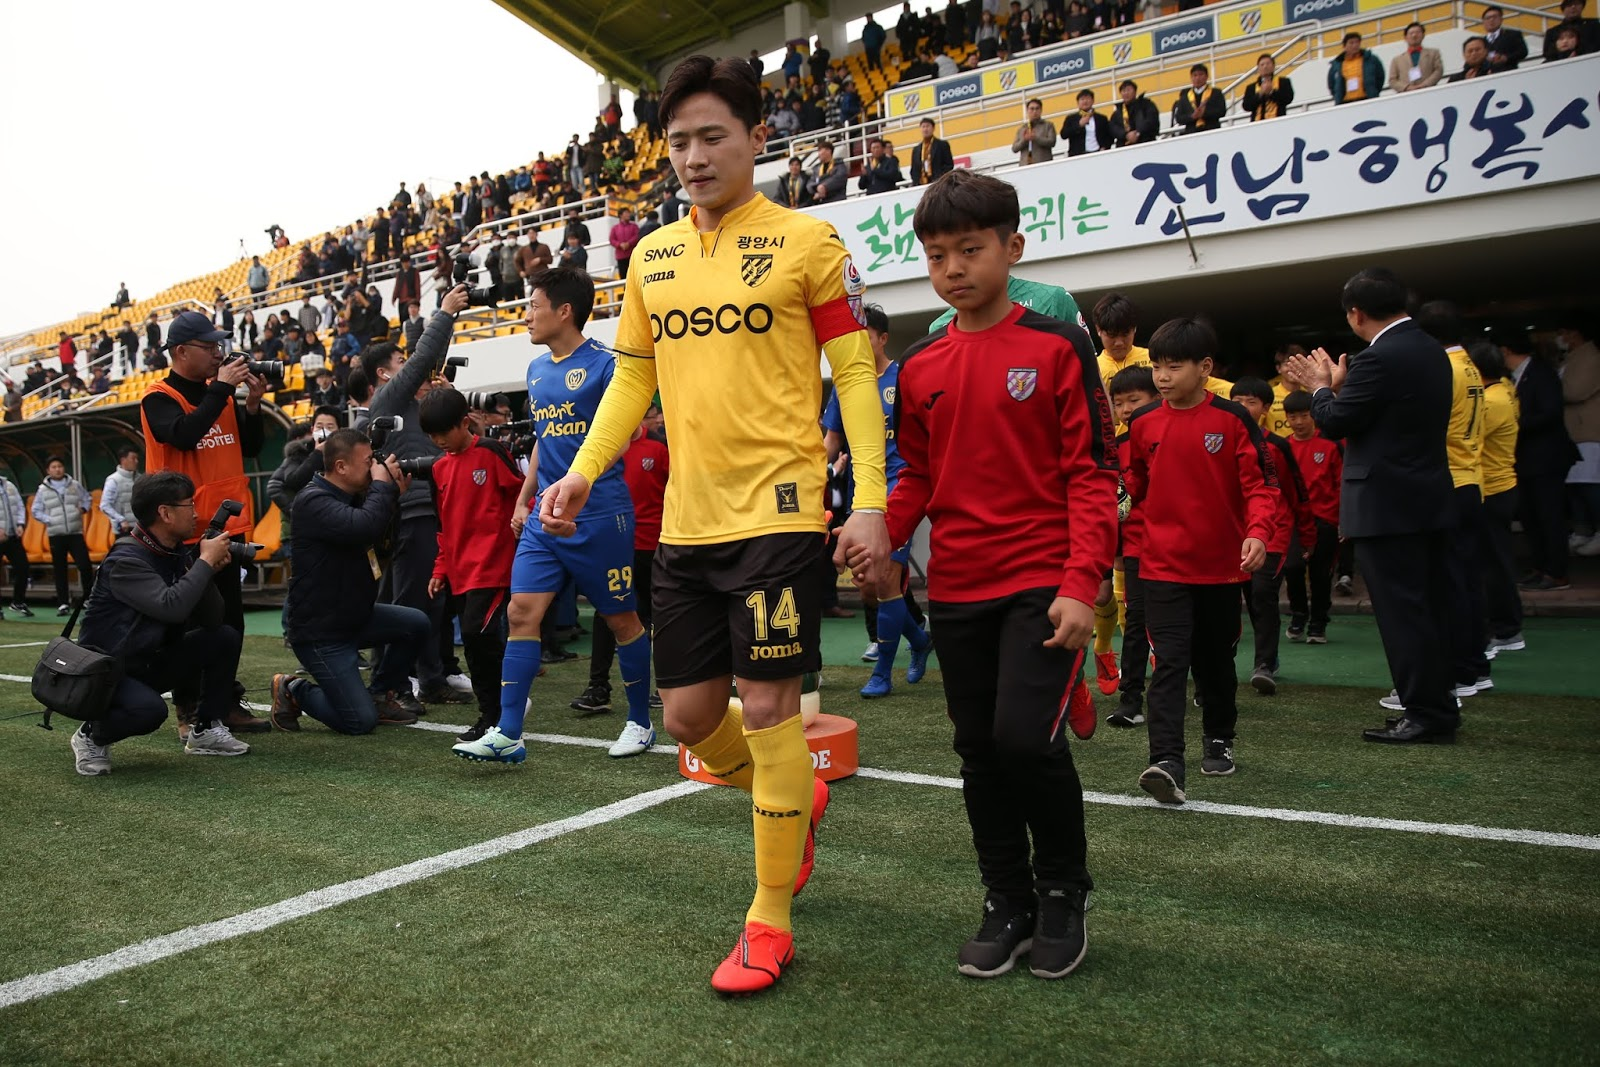 Preview: Jeonnam Dragons vs Daejeon Citizen K League 2 Round 2